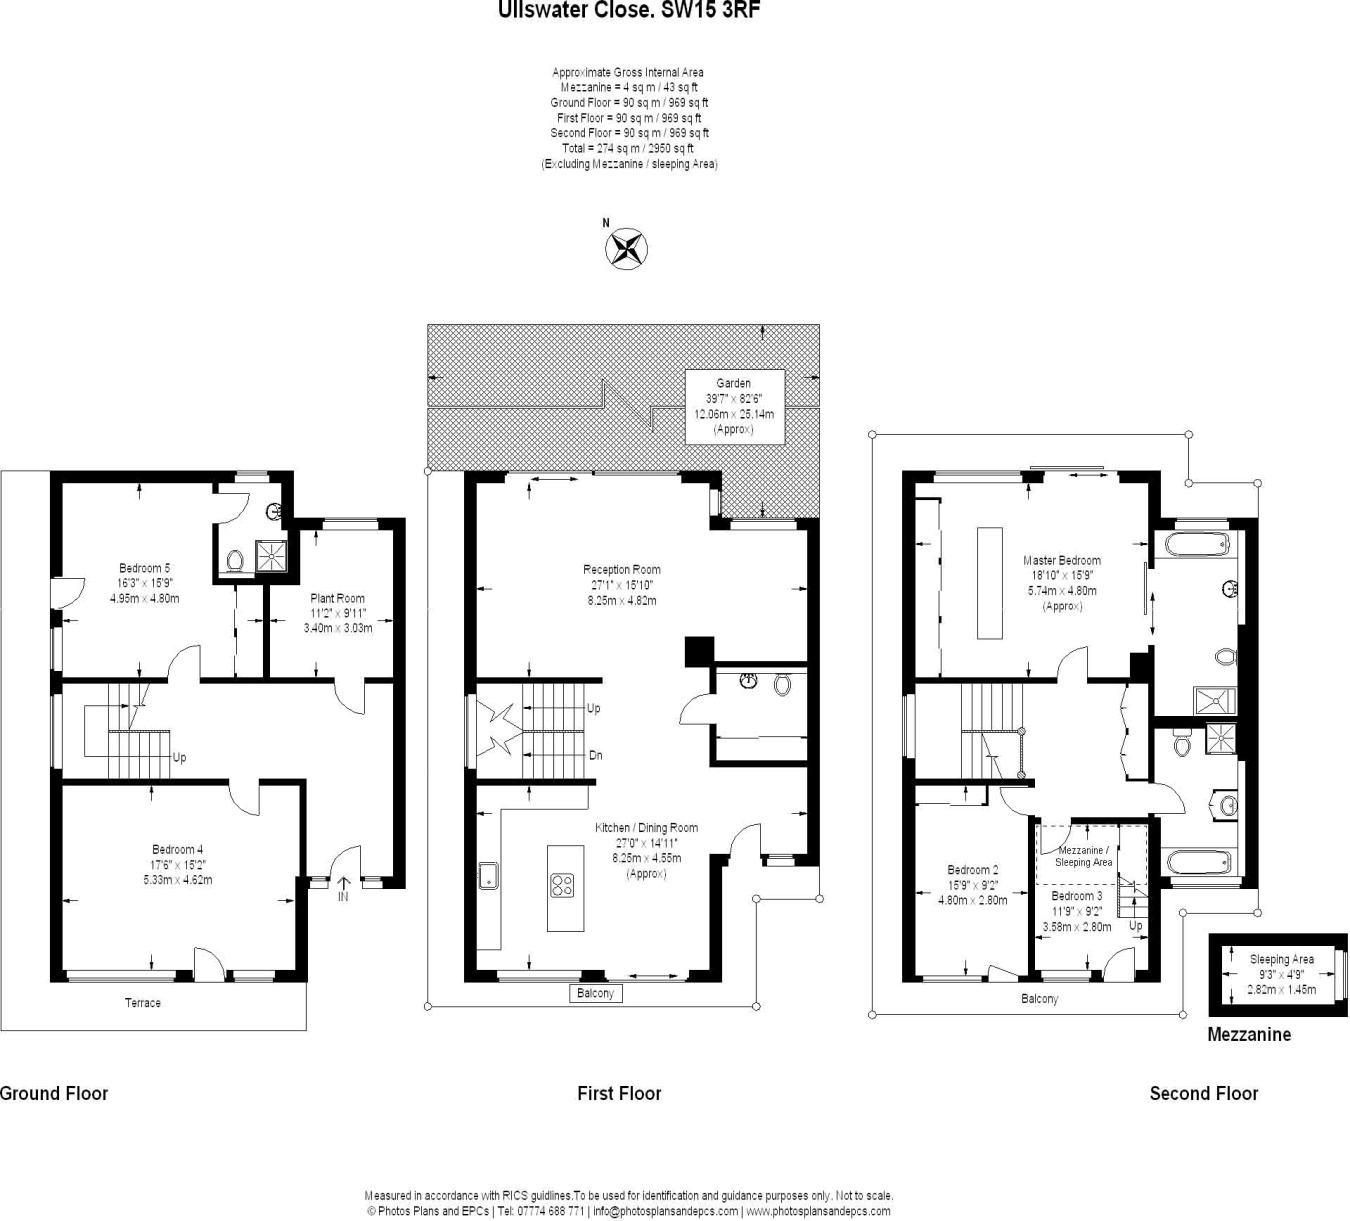 ^ 5 bedroom semi-detached house for sale in Ullswater lose, London ...